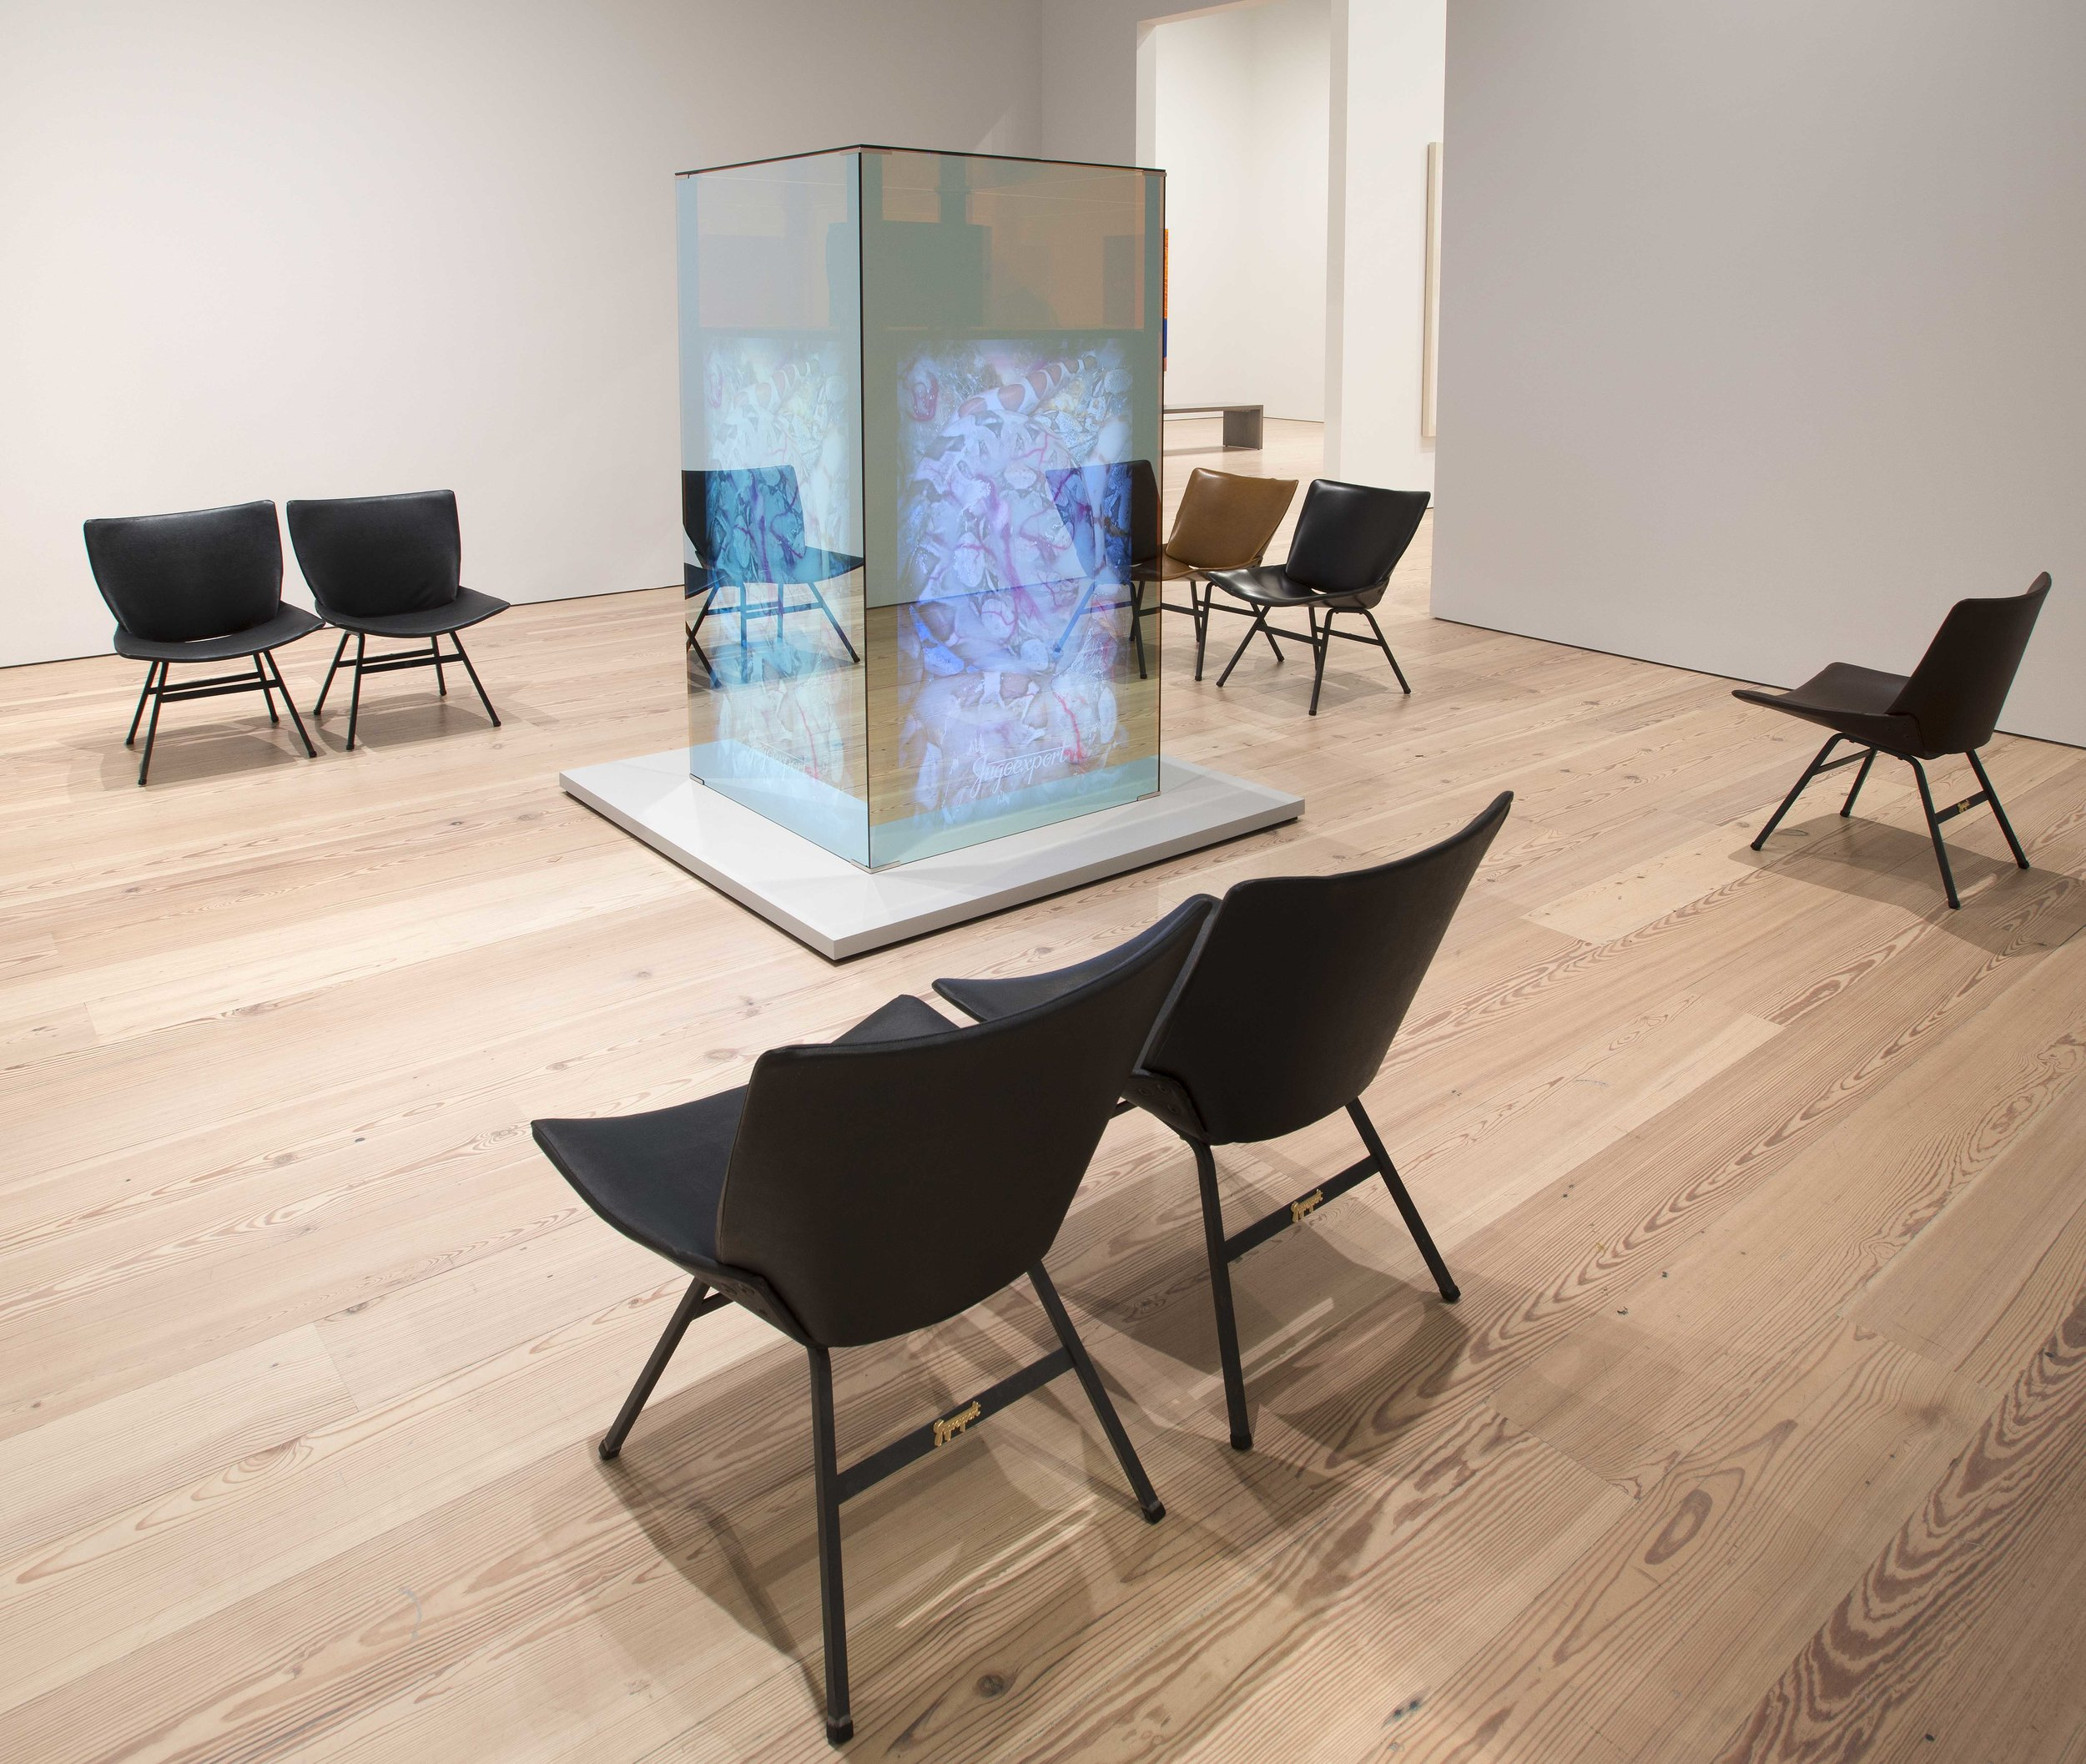 Irena Haiduk with jesus.d and Daniel Sauter. SERVERS FOR .YU and Frauenbank, 2017 (Installation view). Photograph Bill Orcutt